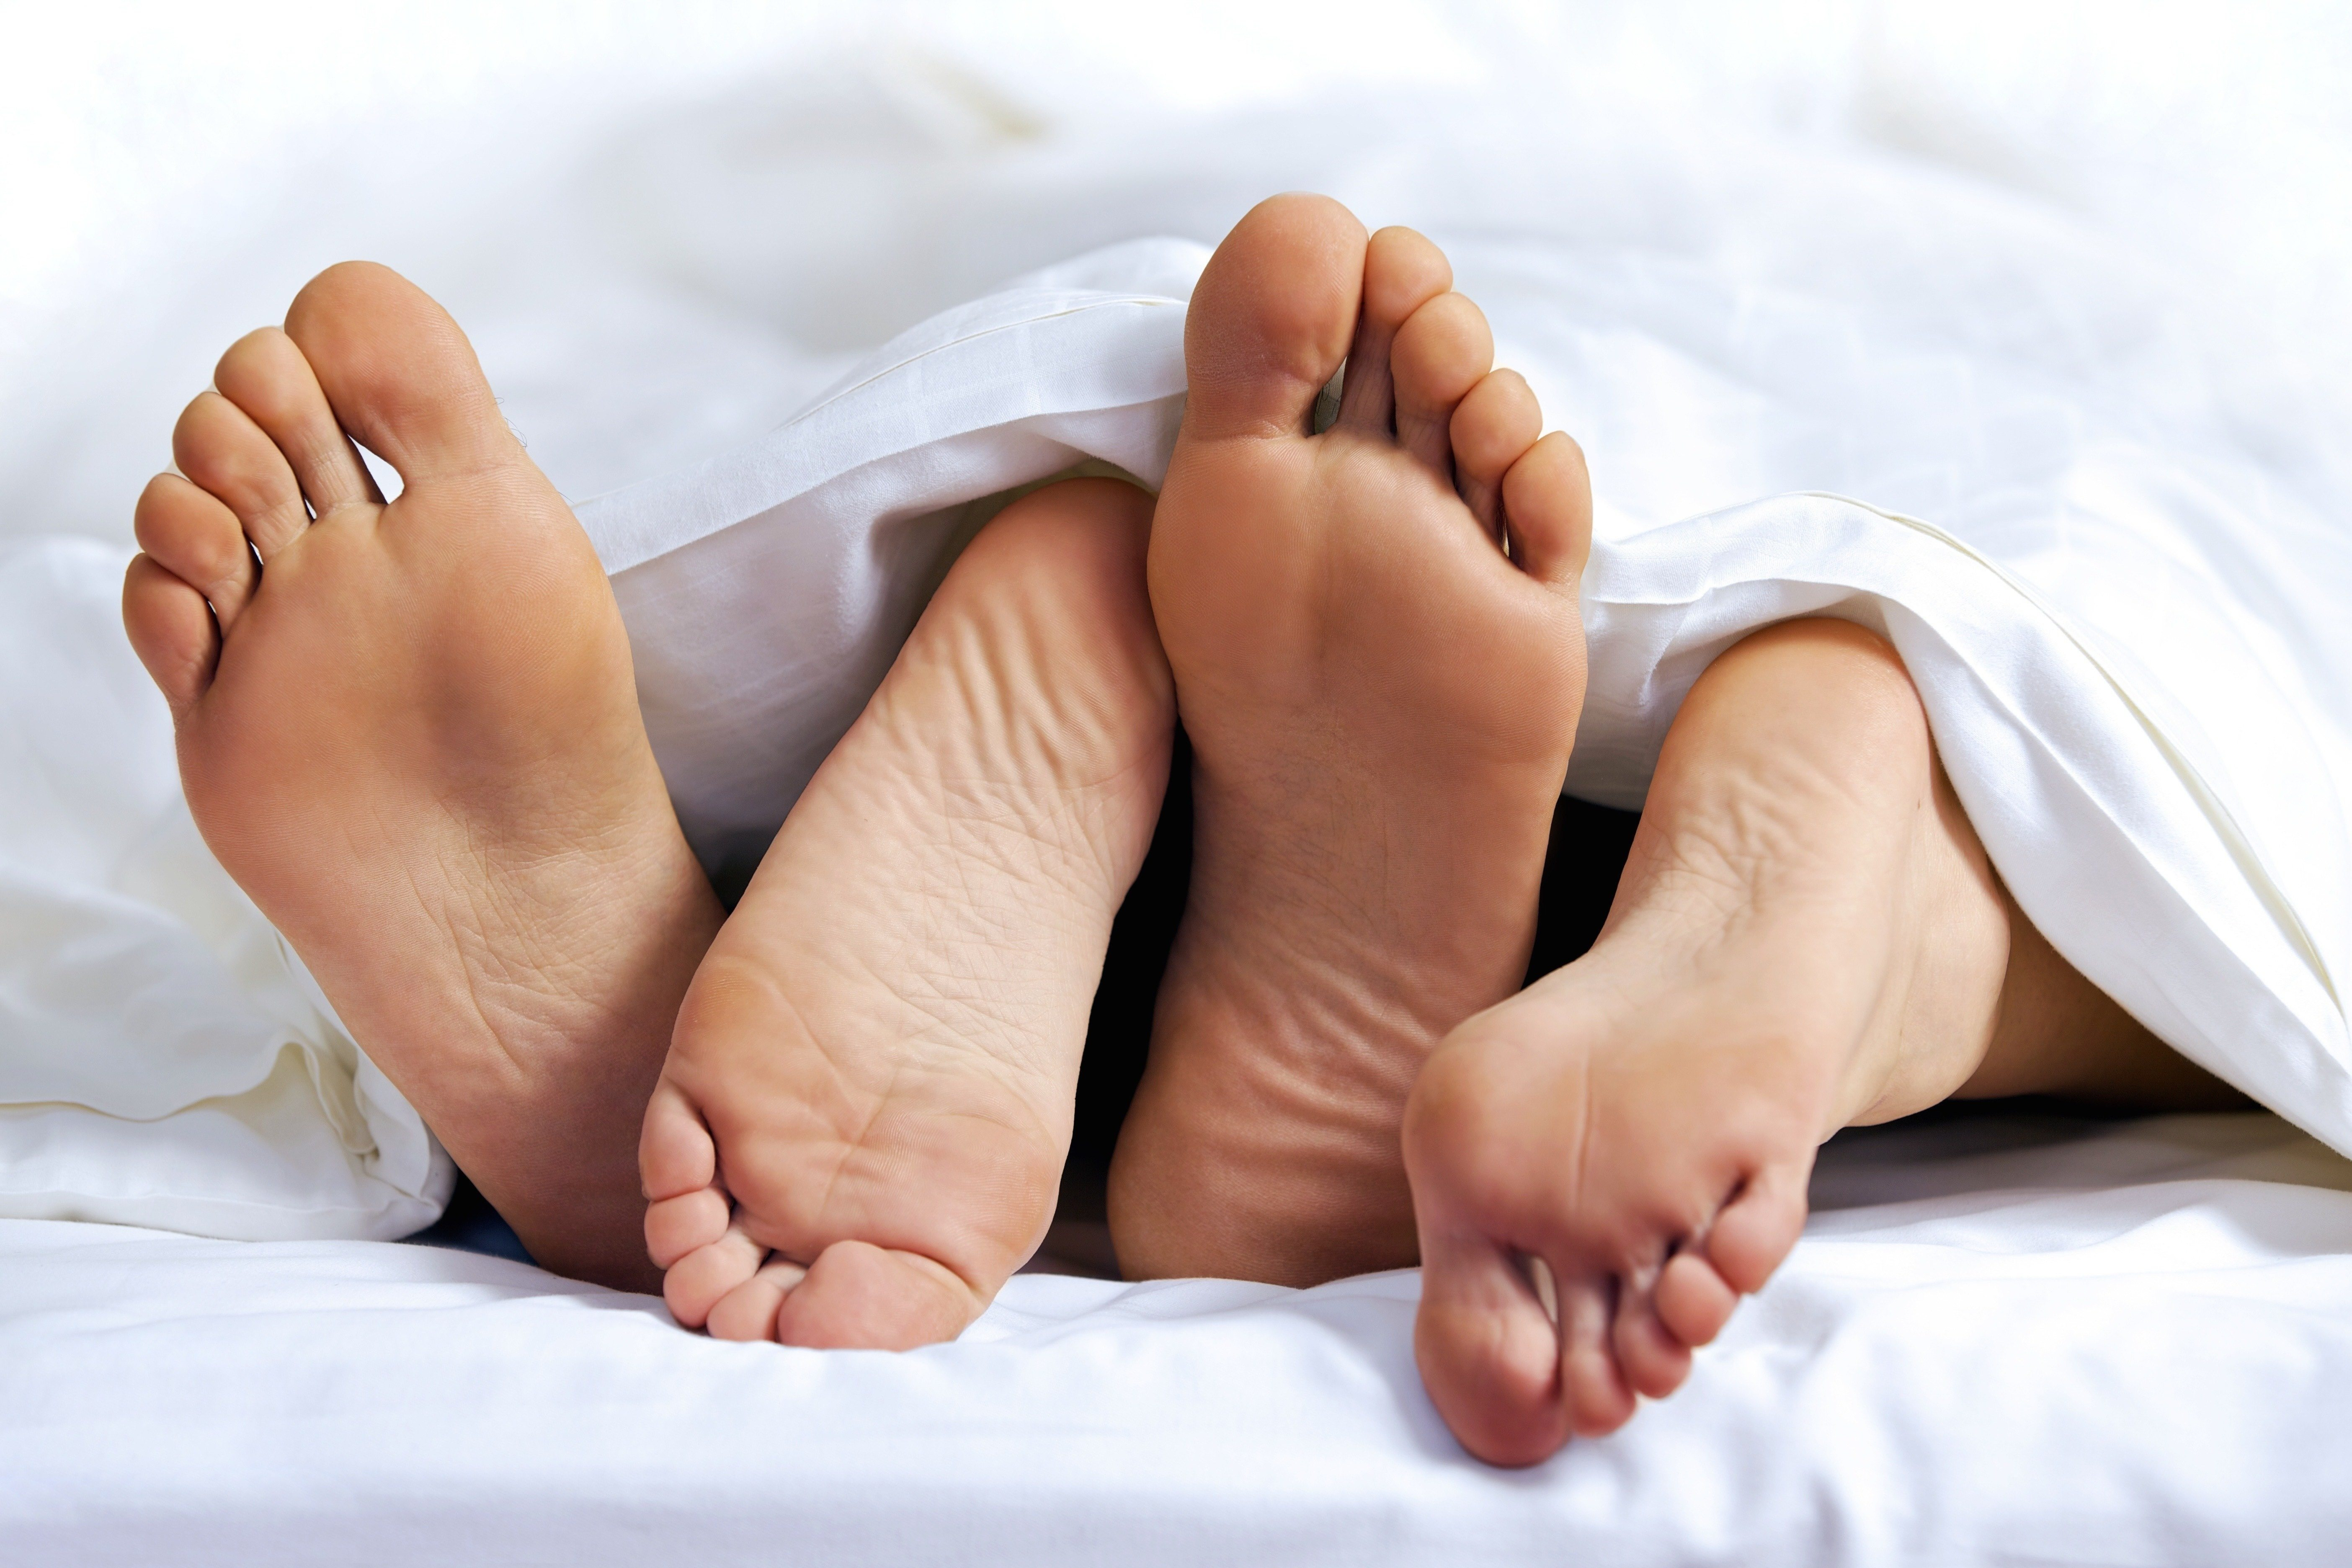 Feet of a couple